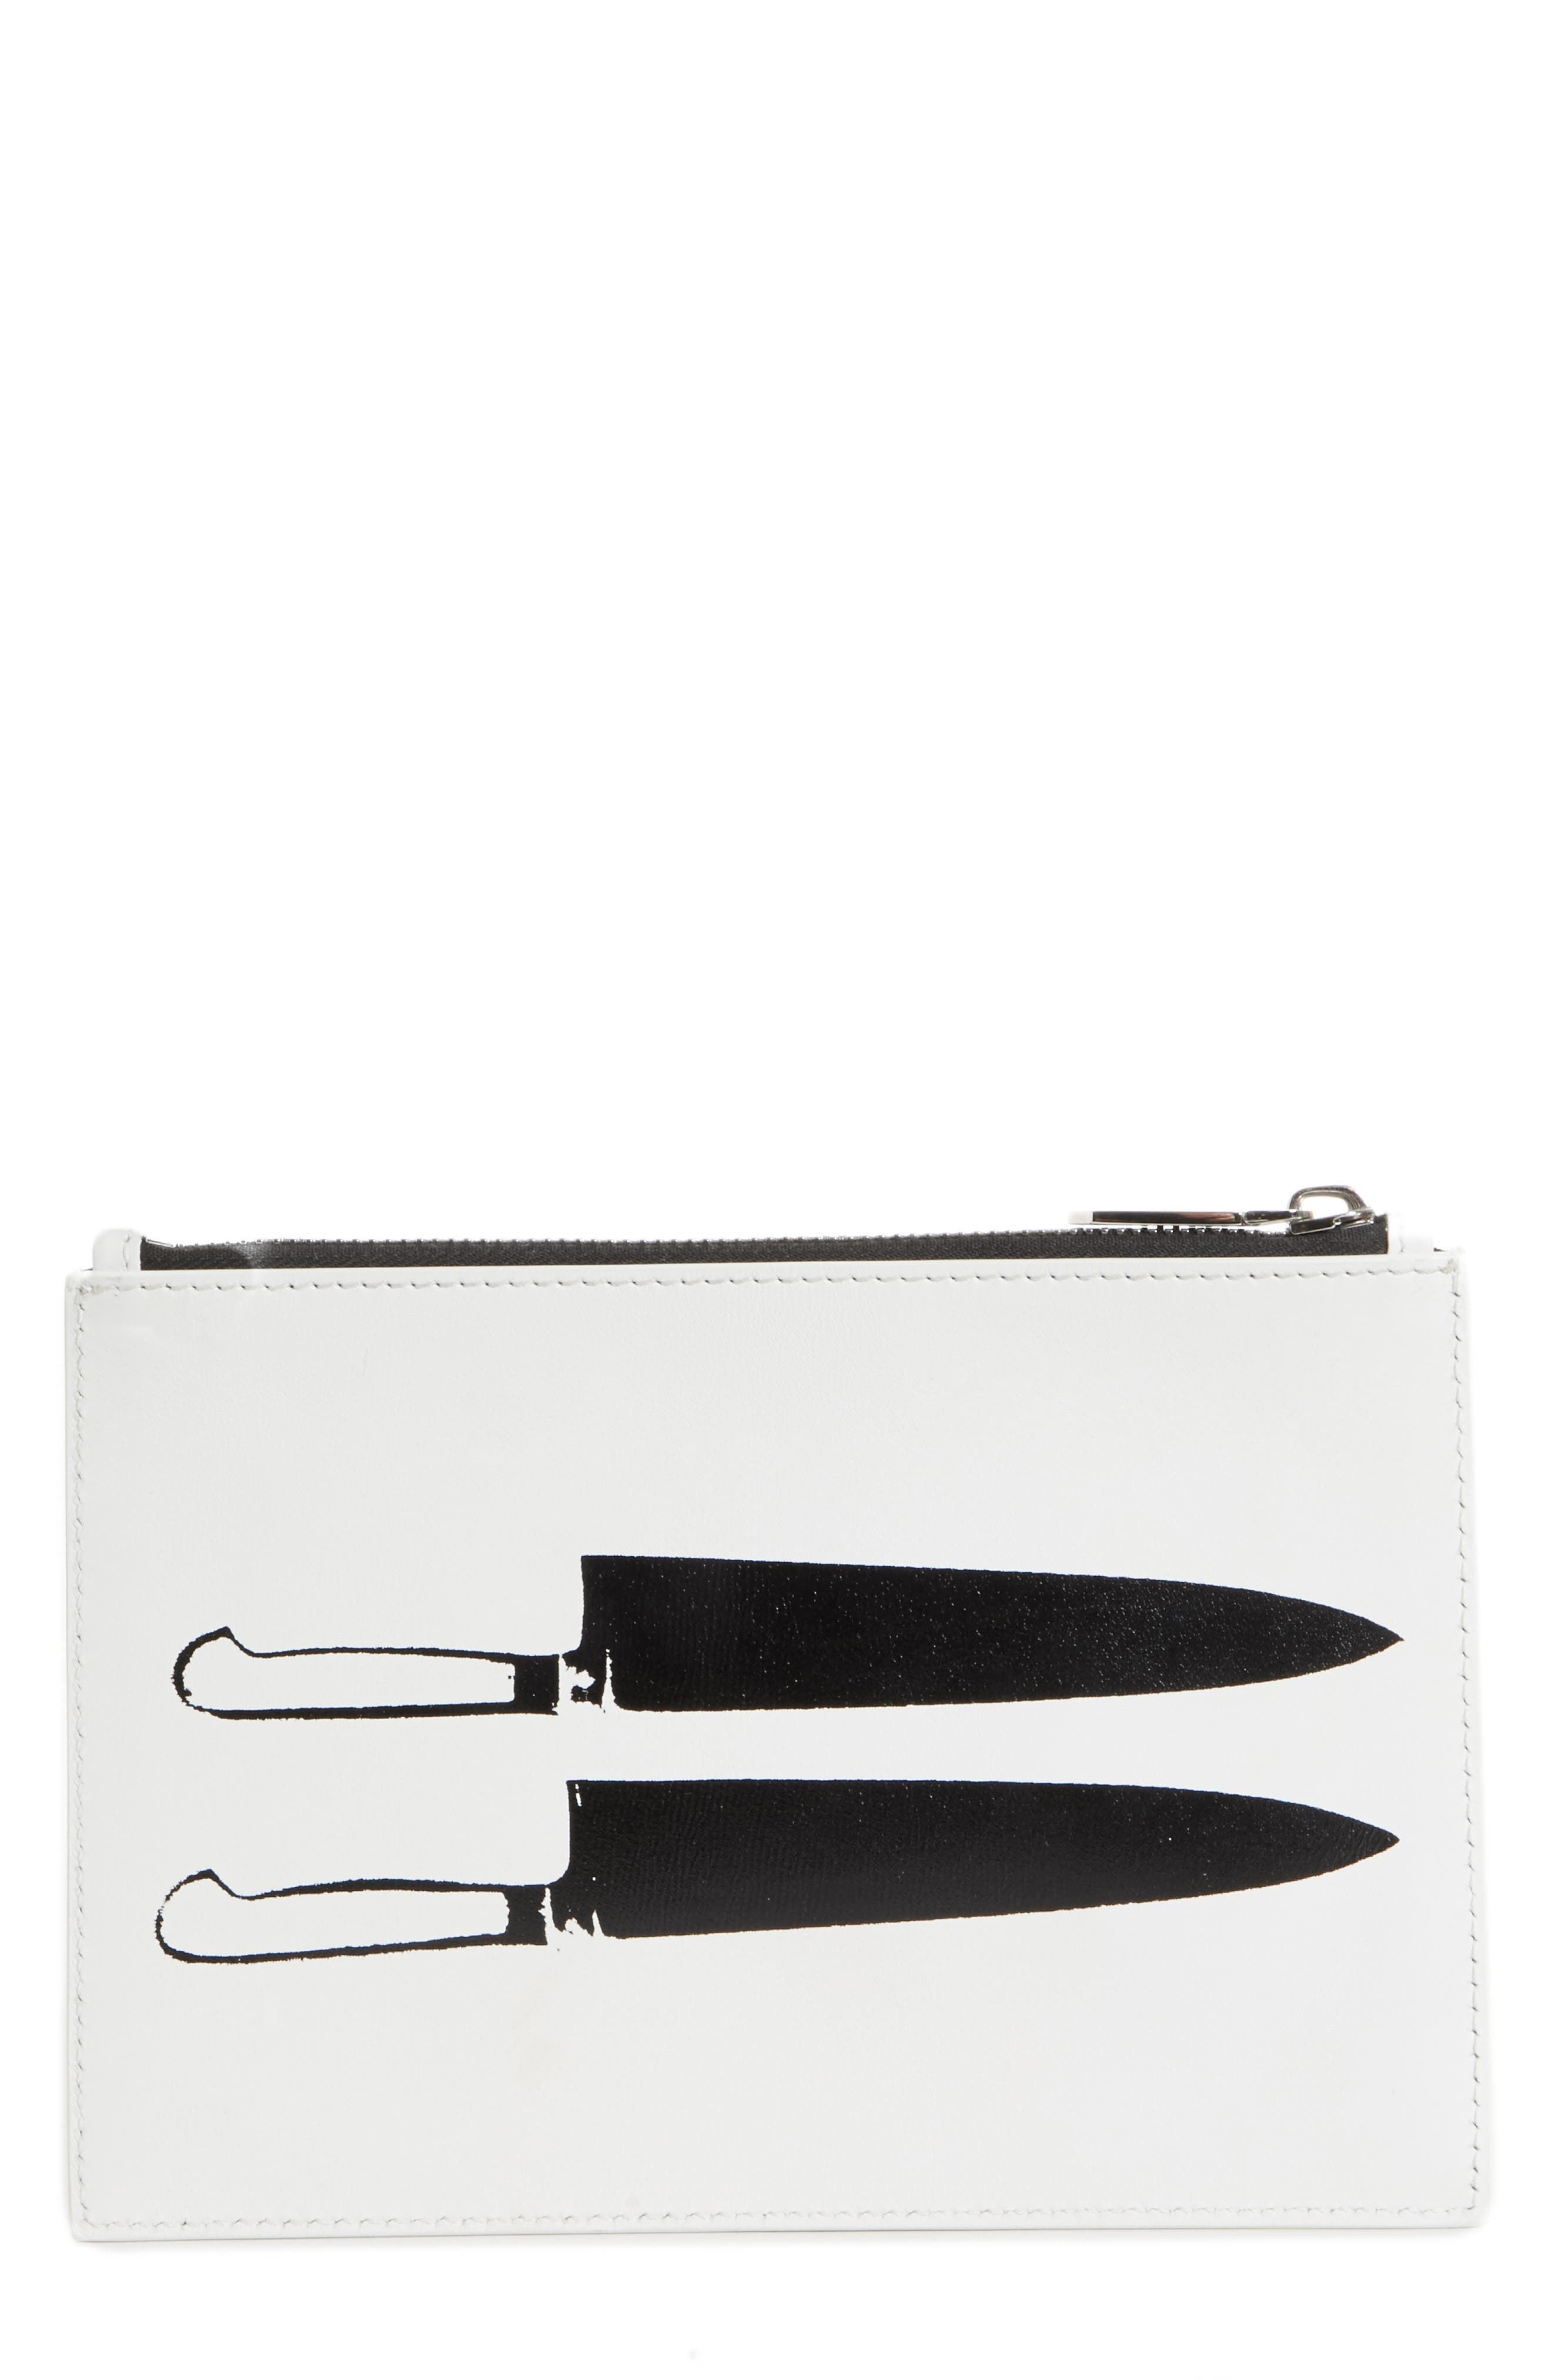 x Andy Warhol Foundation Knives Leather Pouch,                             Main thumbnail 1, color,                             White/ Black